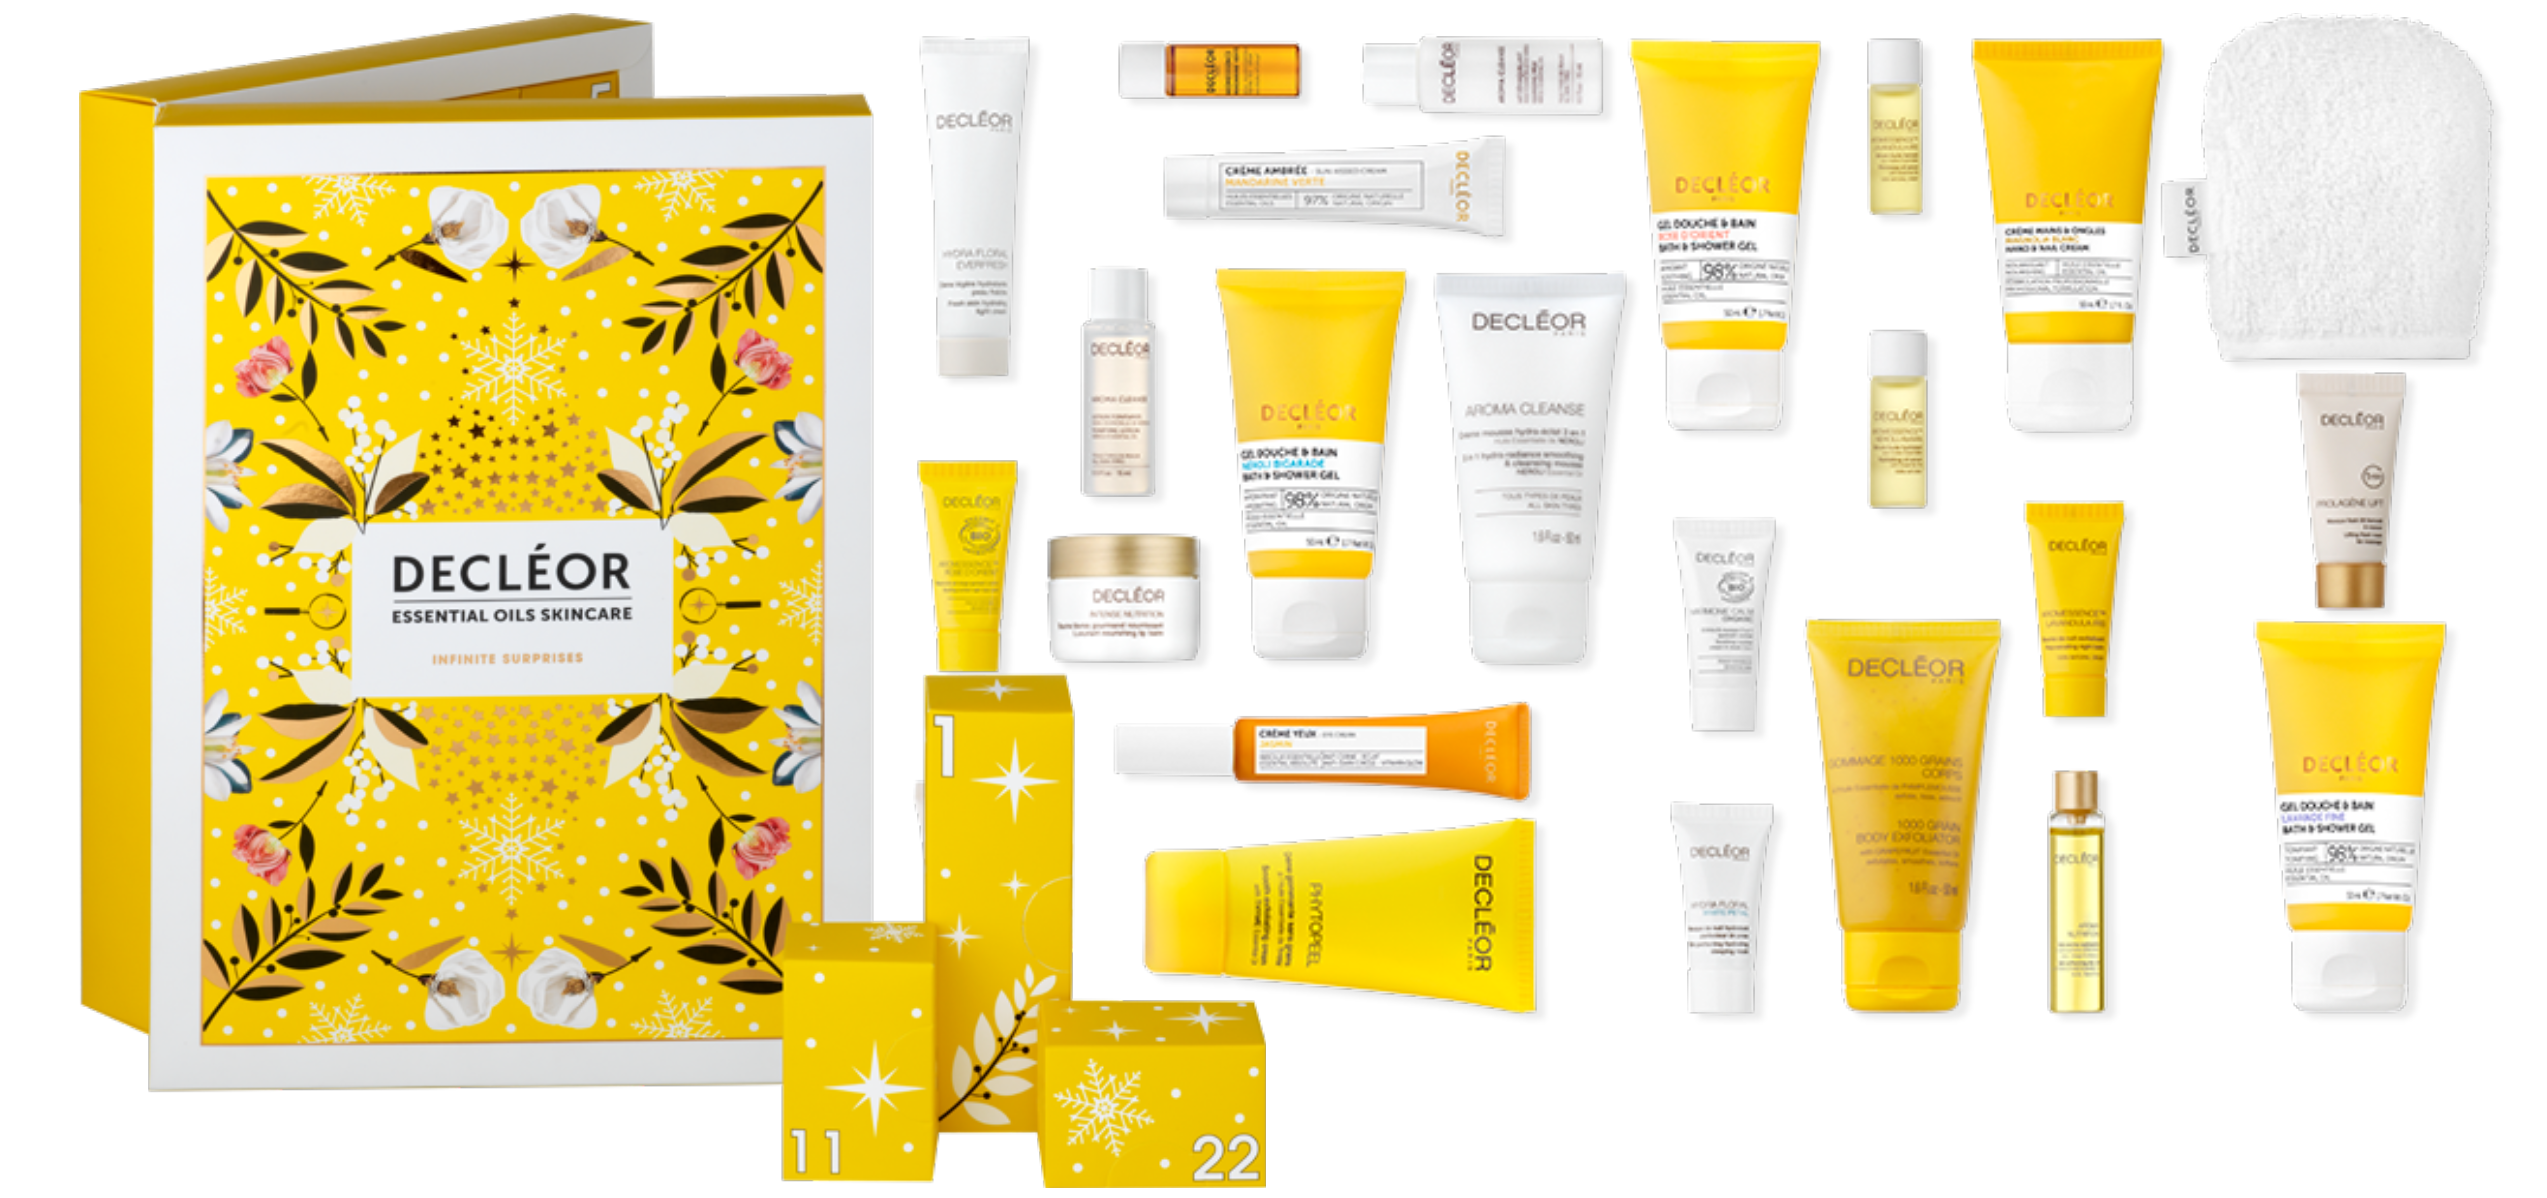 Decleor beauty advent calendar 2019 - The LDN Diaries